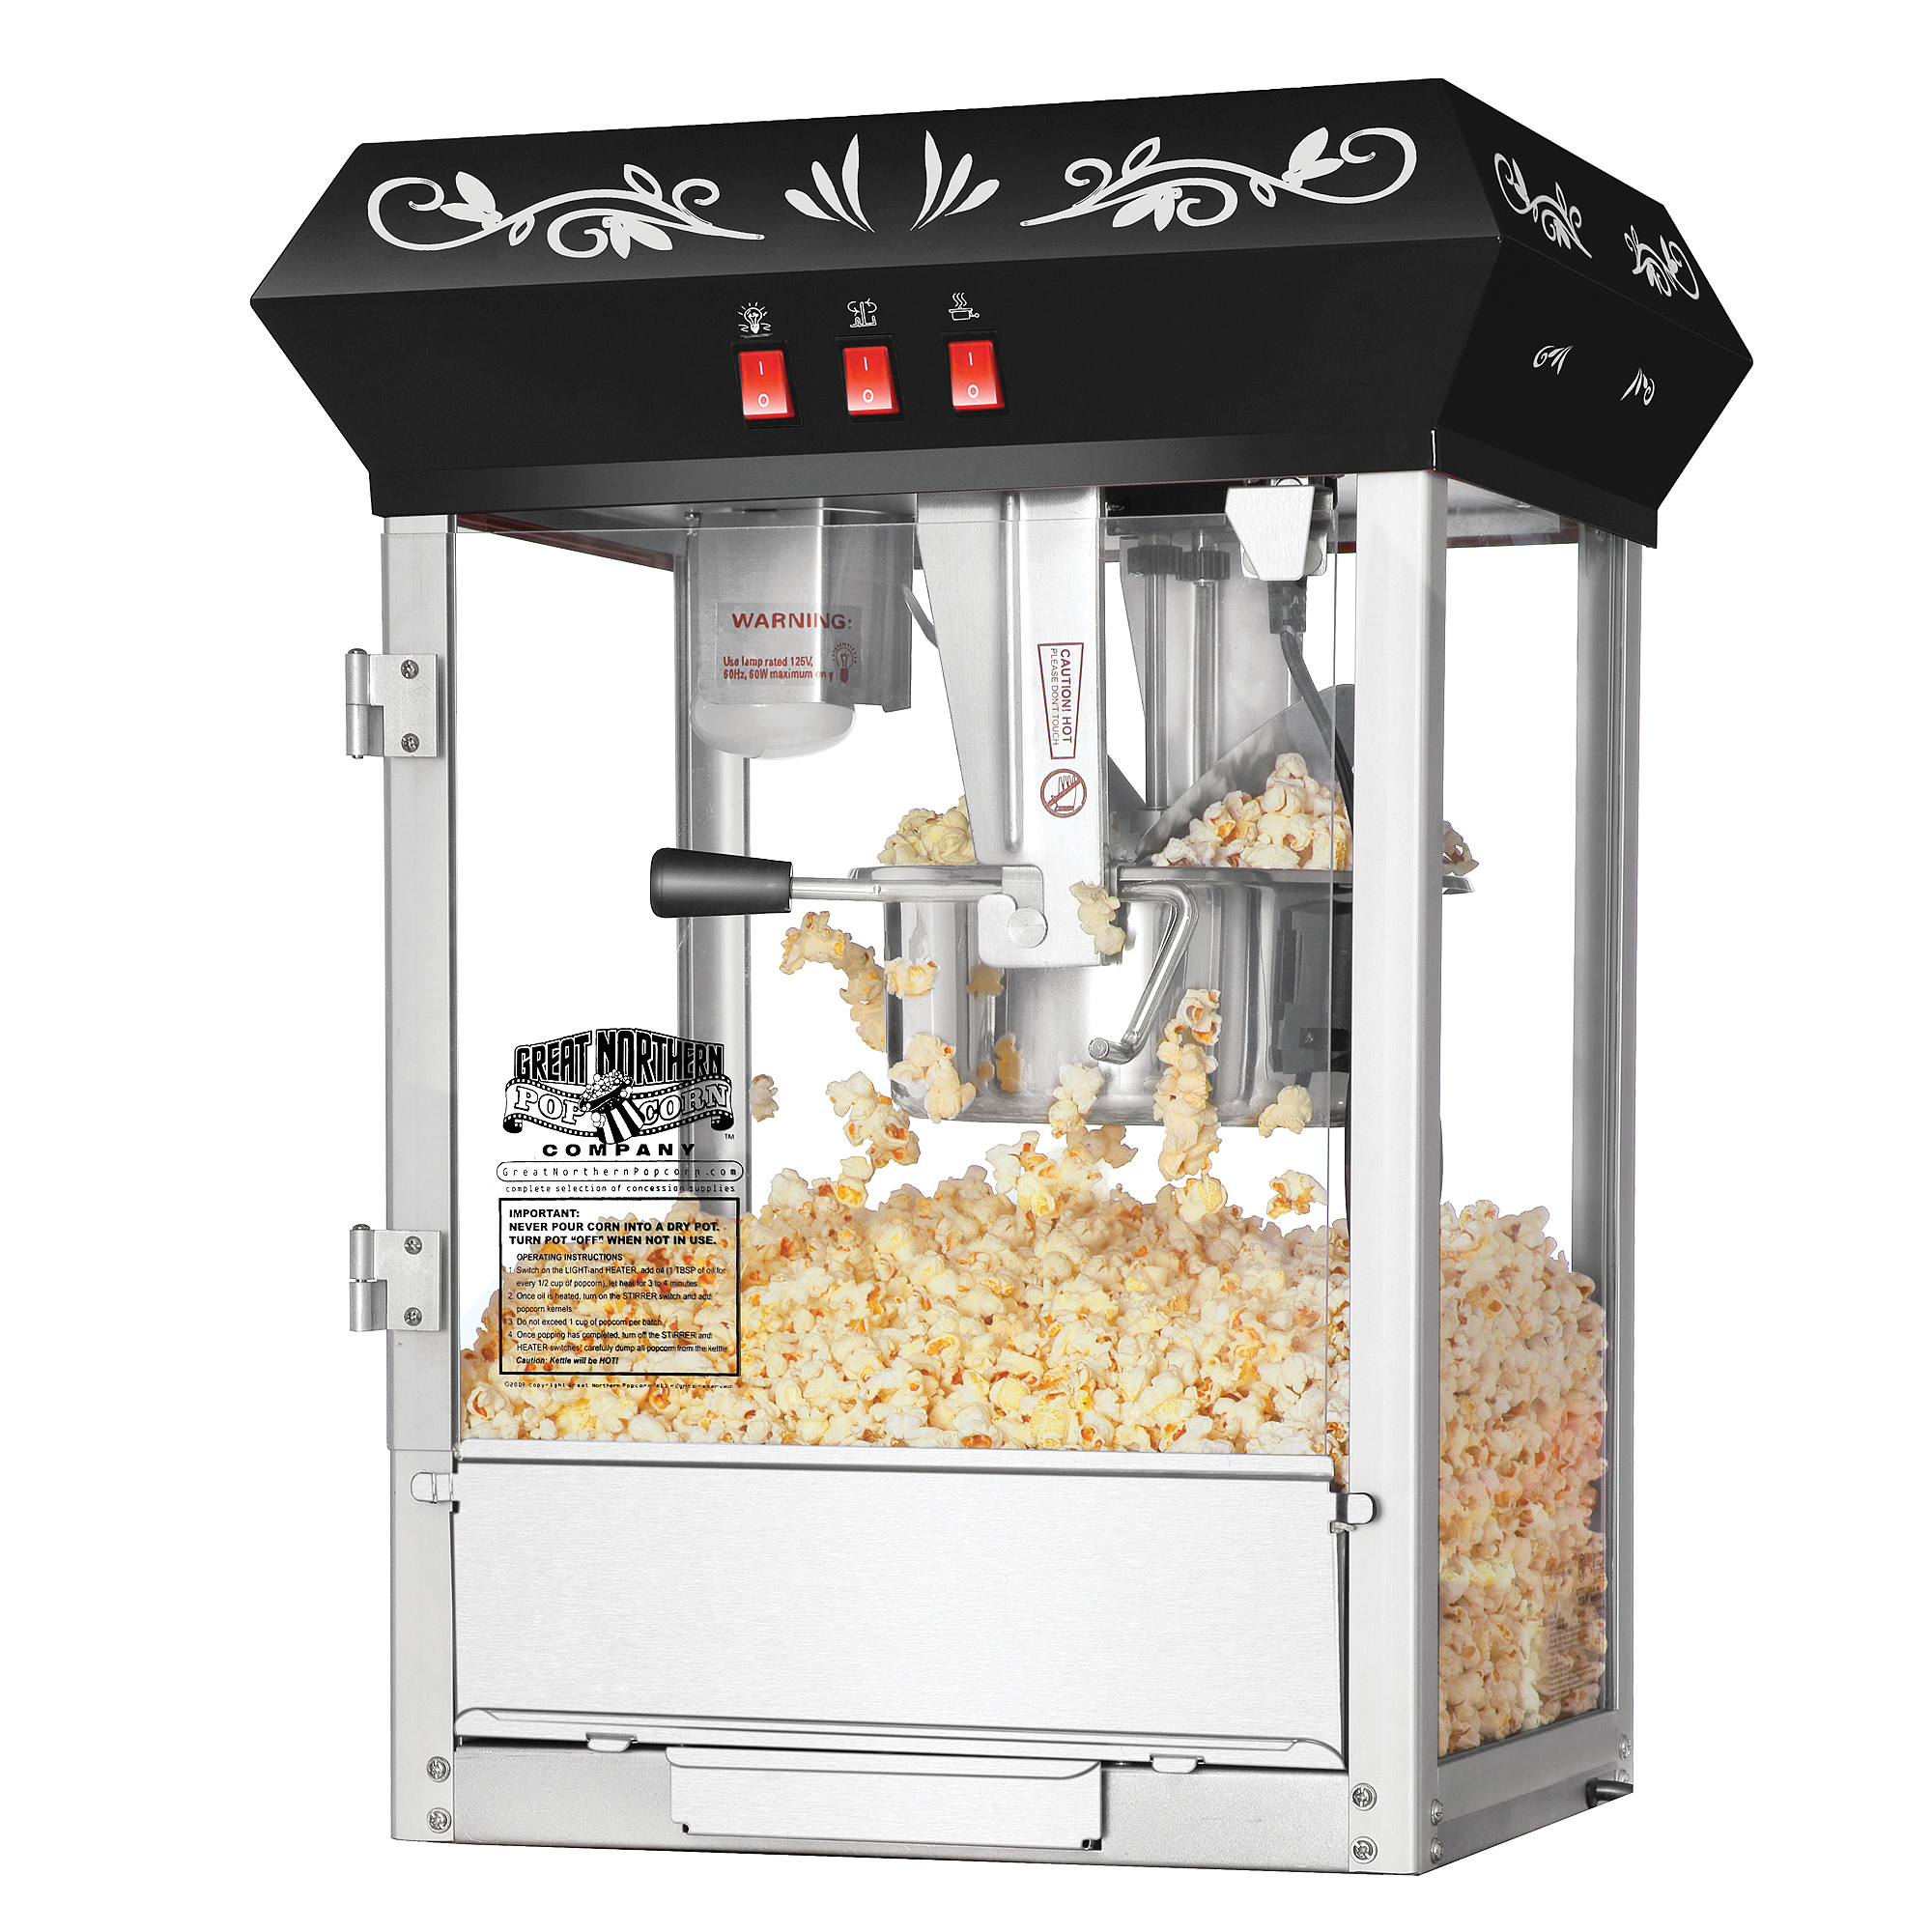 Great Northern Popcorn Black Foundation Popcorn Popper Machine, 8 Ounce